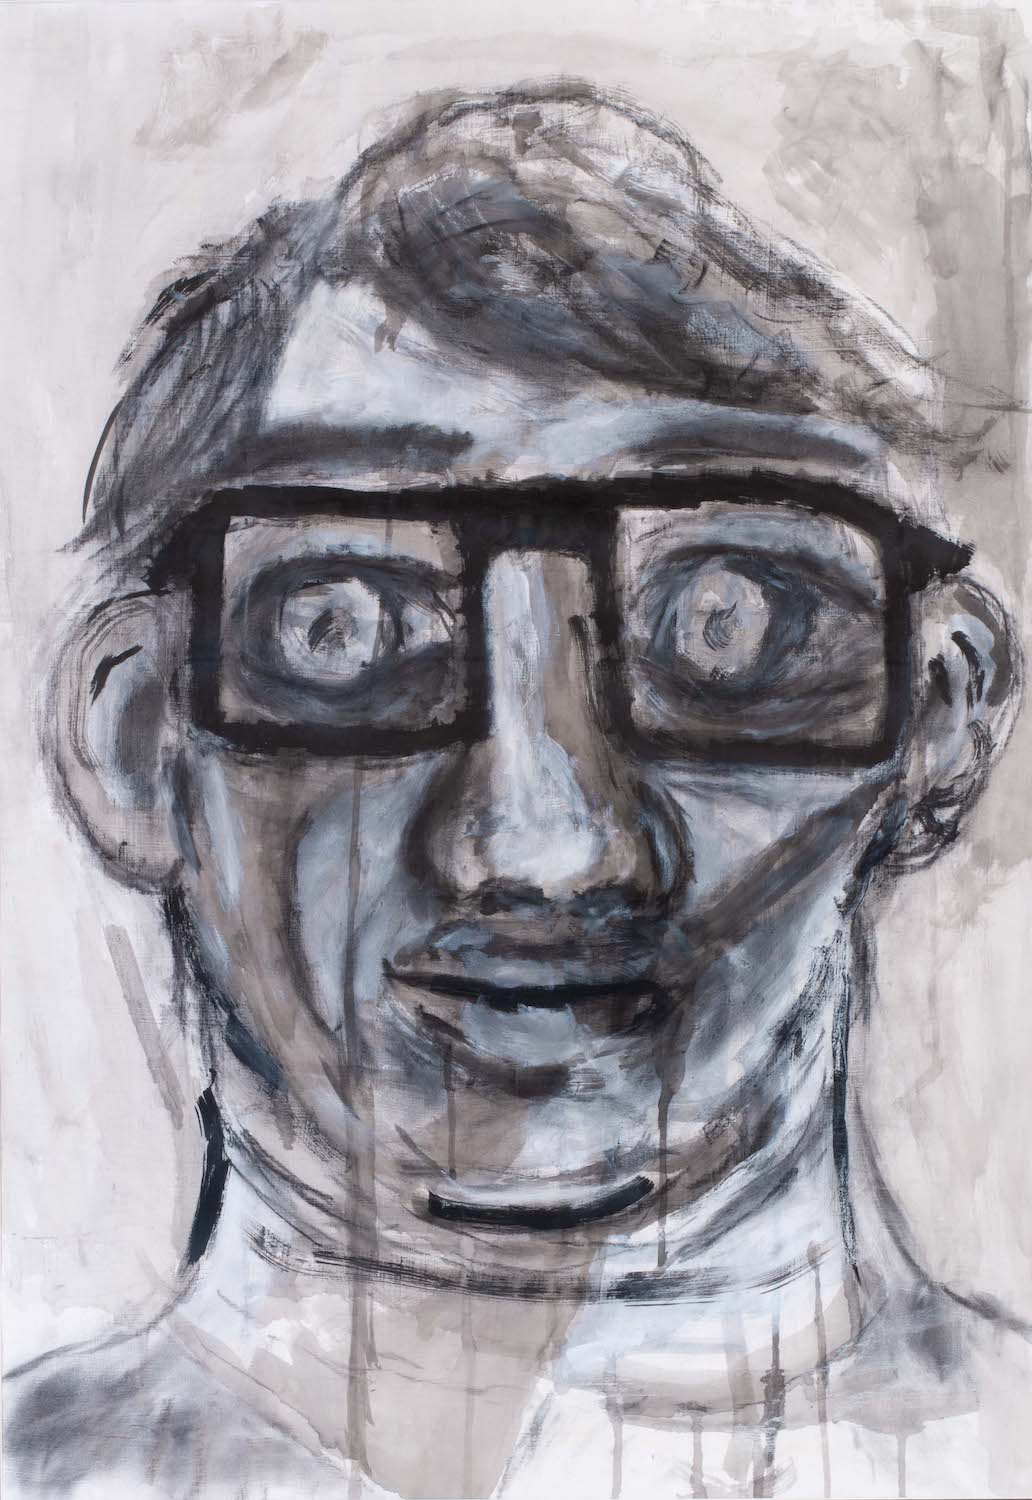 face wearing glasses